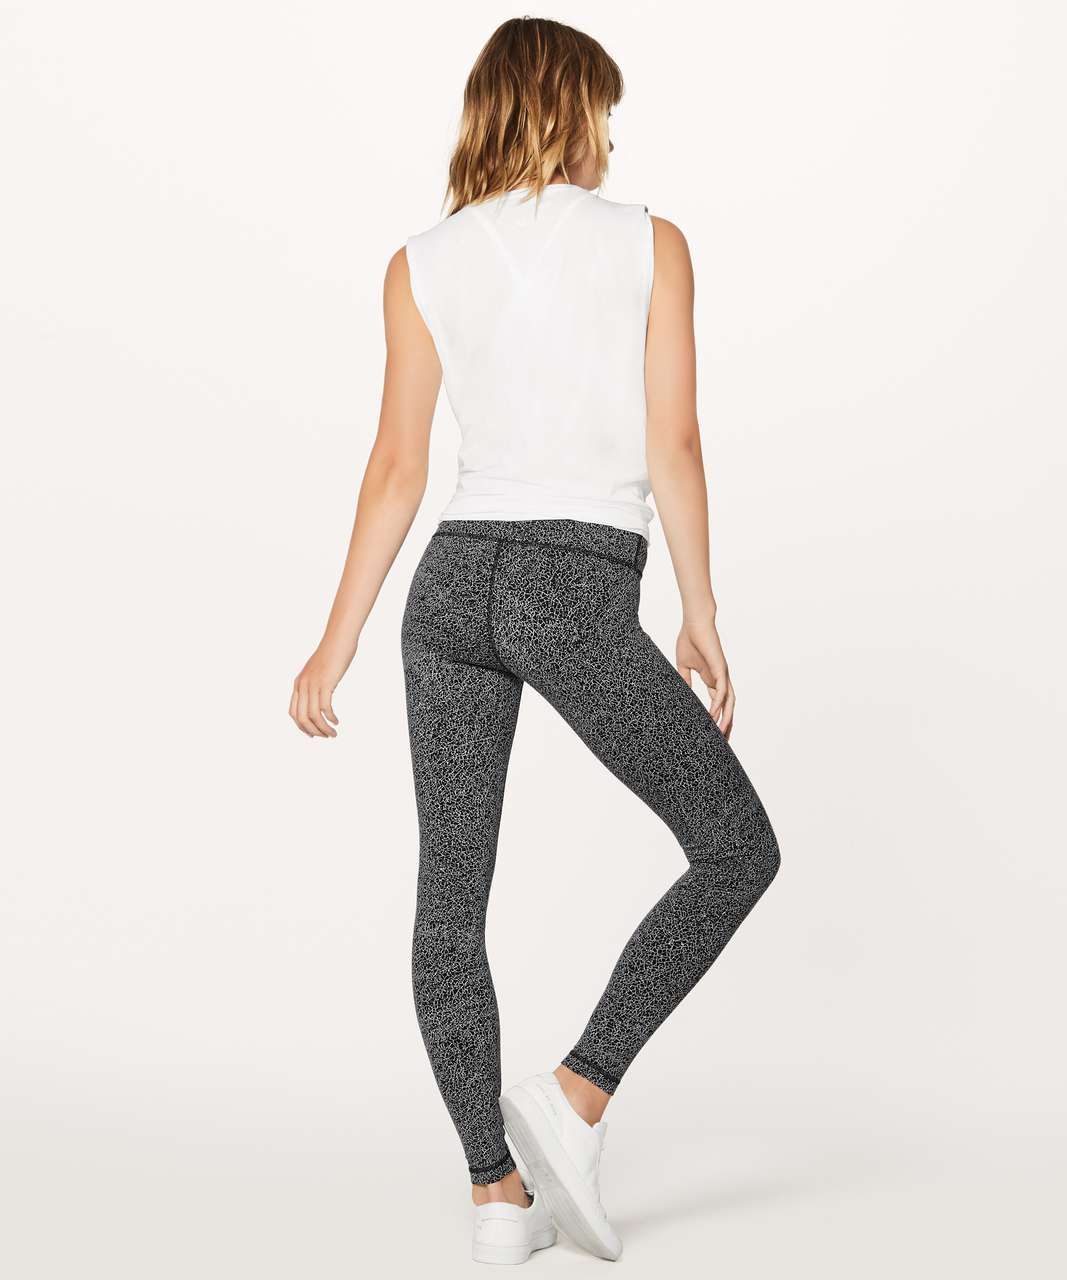 "Lululemon Wunder Under Hi-Rise Tight (28"") - Luon Crackle Jaquard Black White"